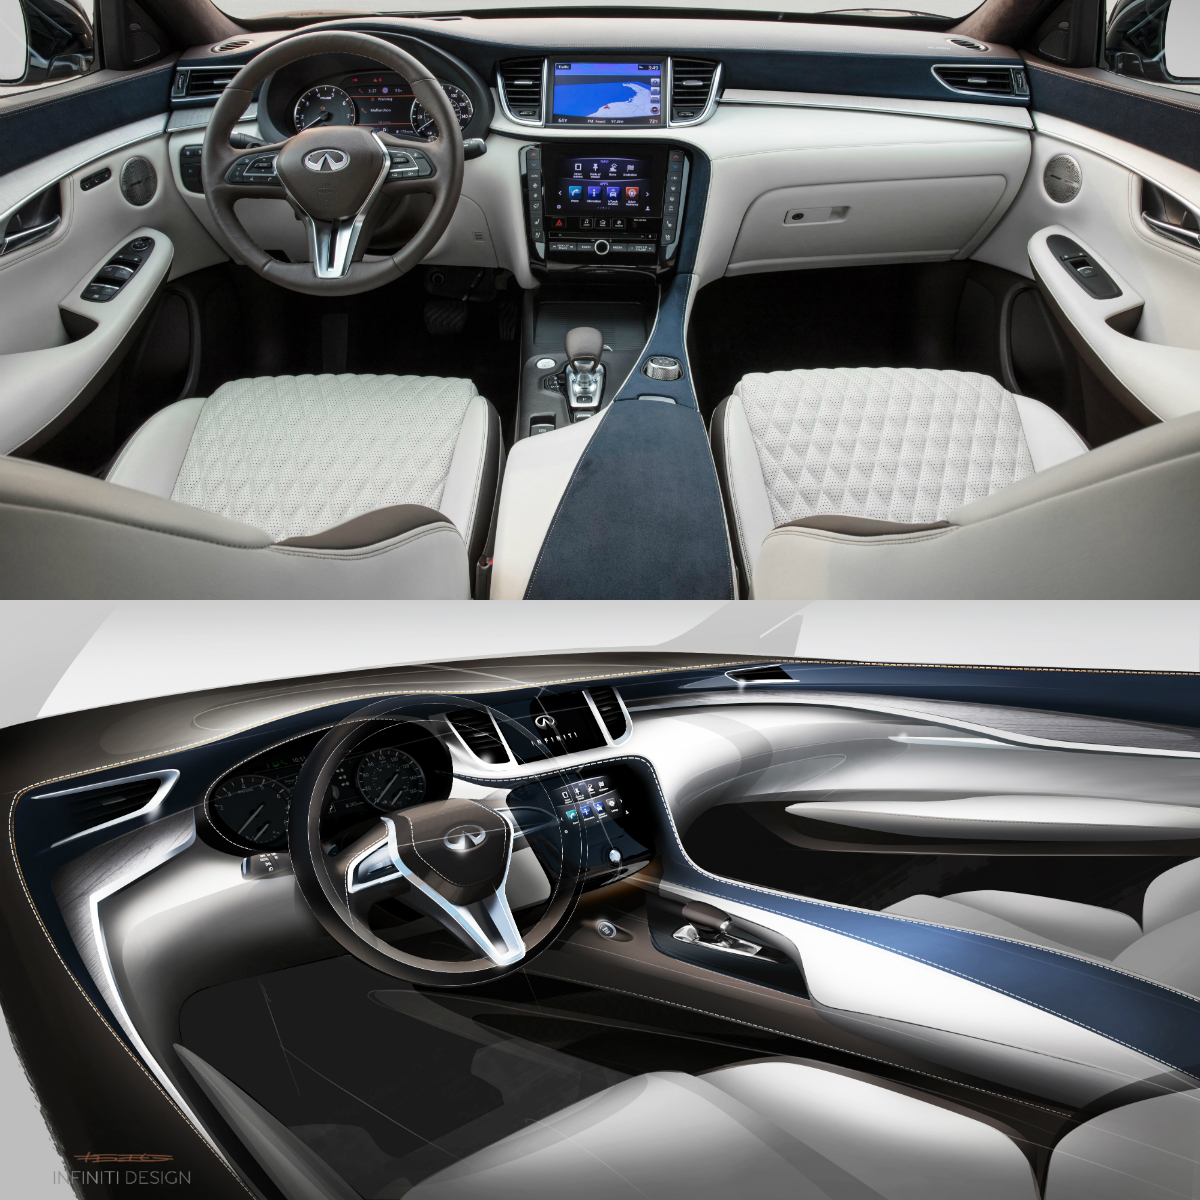 2005 Infiniti Qx Interior: Infiniti QX50 Autograph Interior Is Inspired By A Luxury